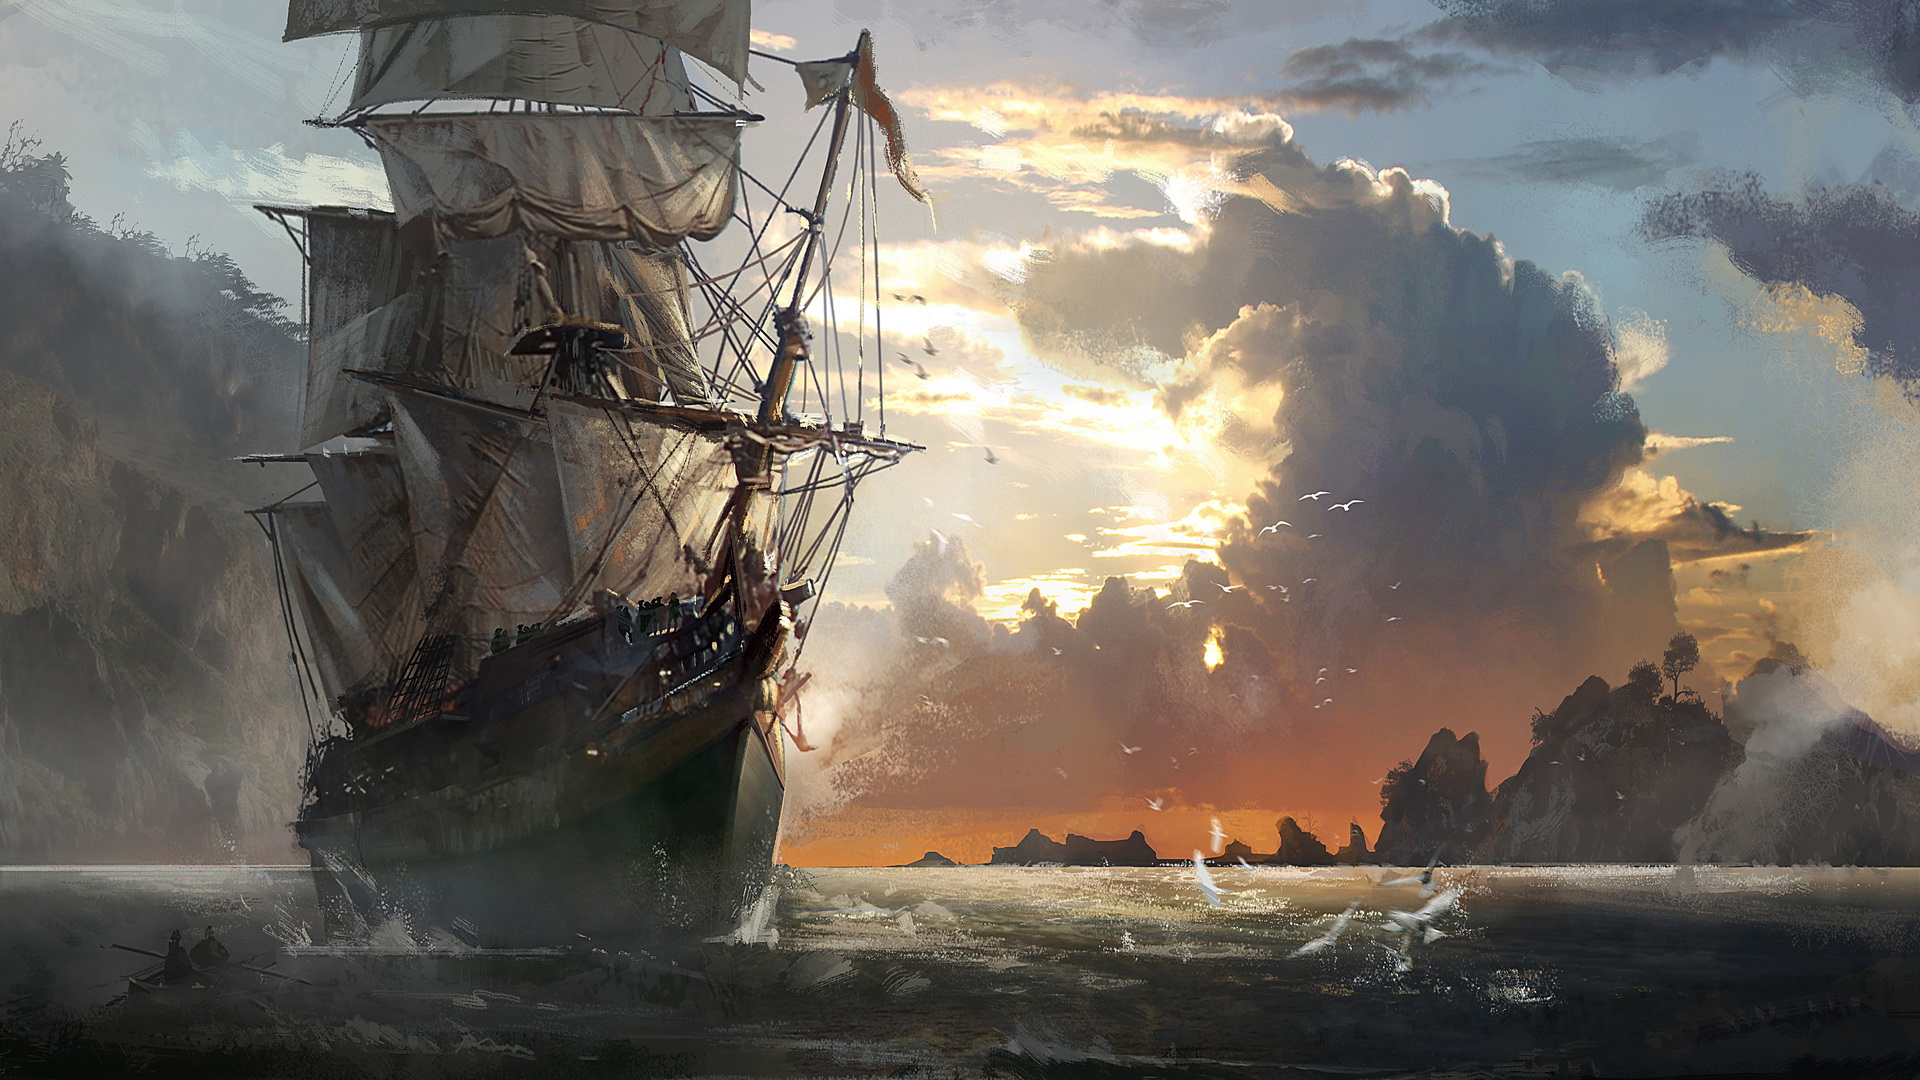 Art-Pirate-Ship-04.jpg